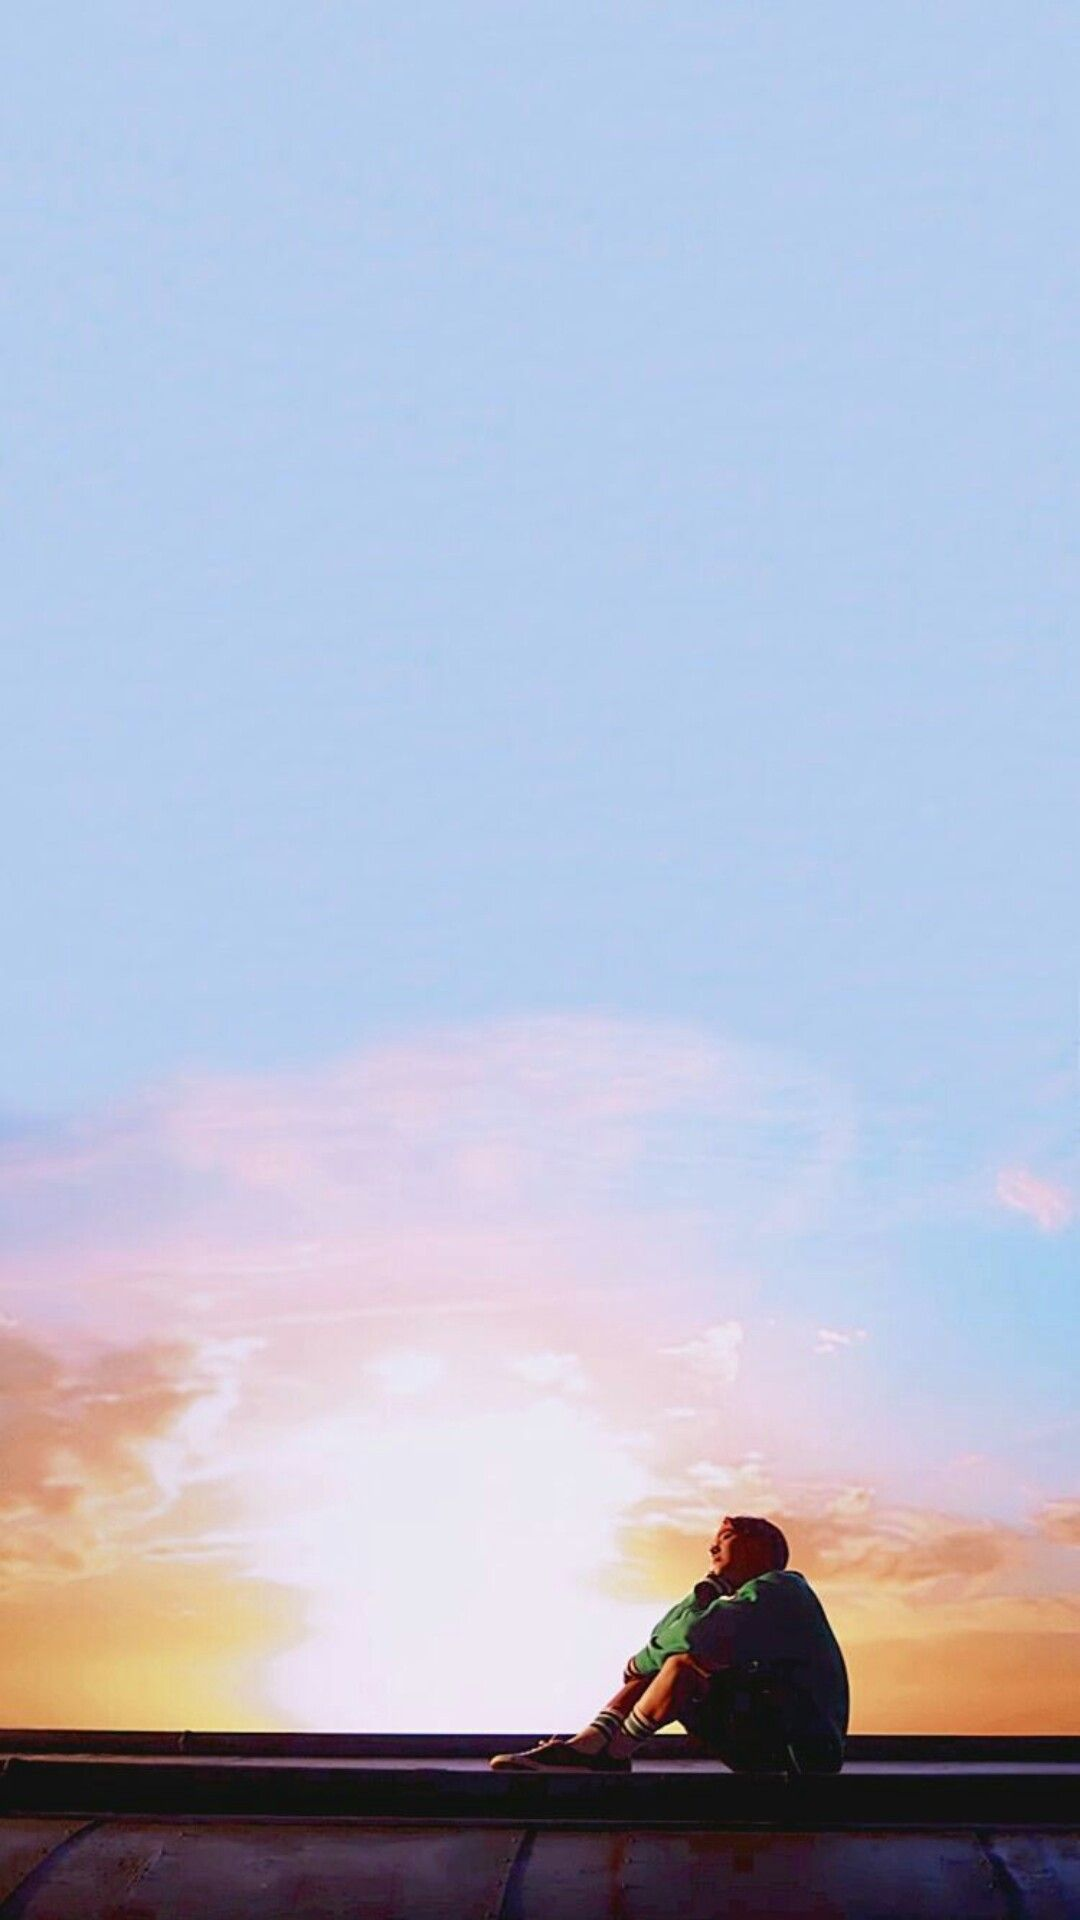 Bts Spring Day Teaser Wallpaper Bts Spring Day Wallpaper Wallpaper Ponsel Gambar Bts